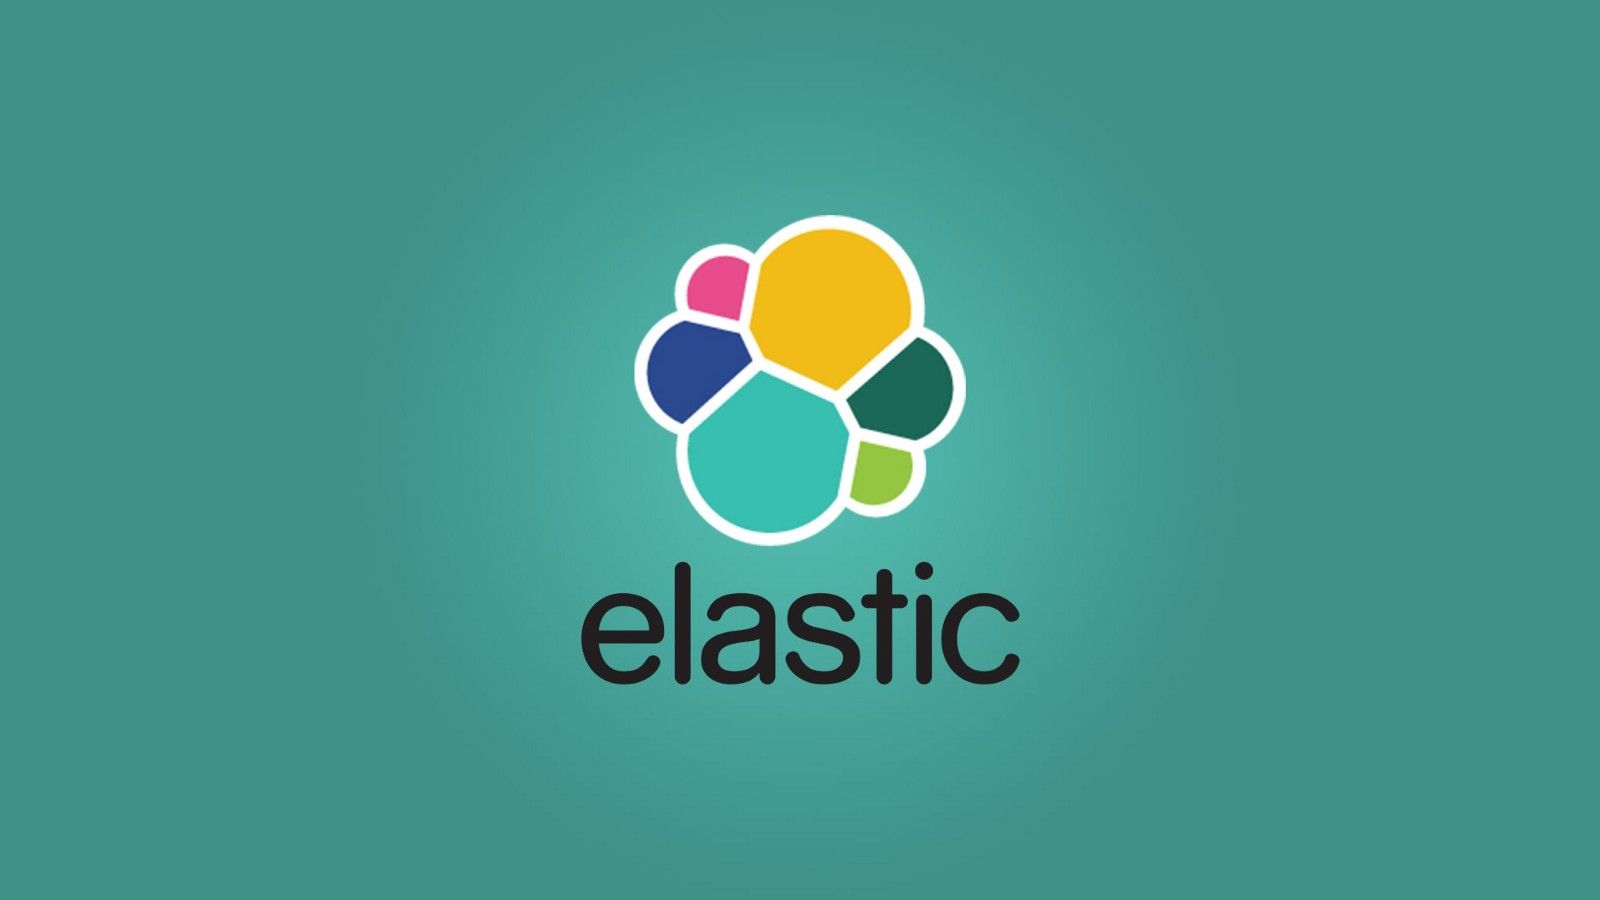 11 Best Elastic Search Courses & Certifications - Learn Elastic Search Online